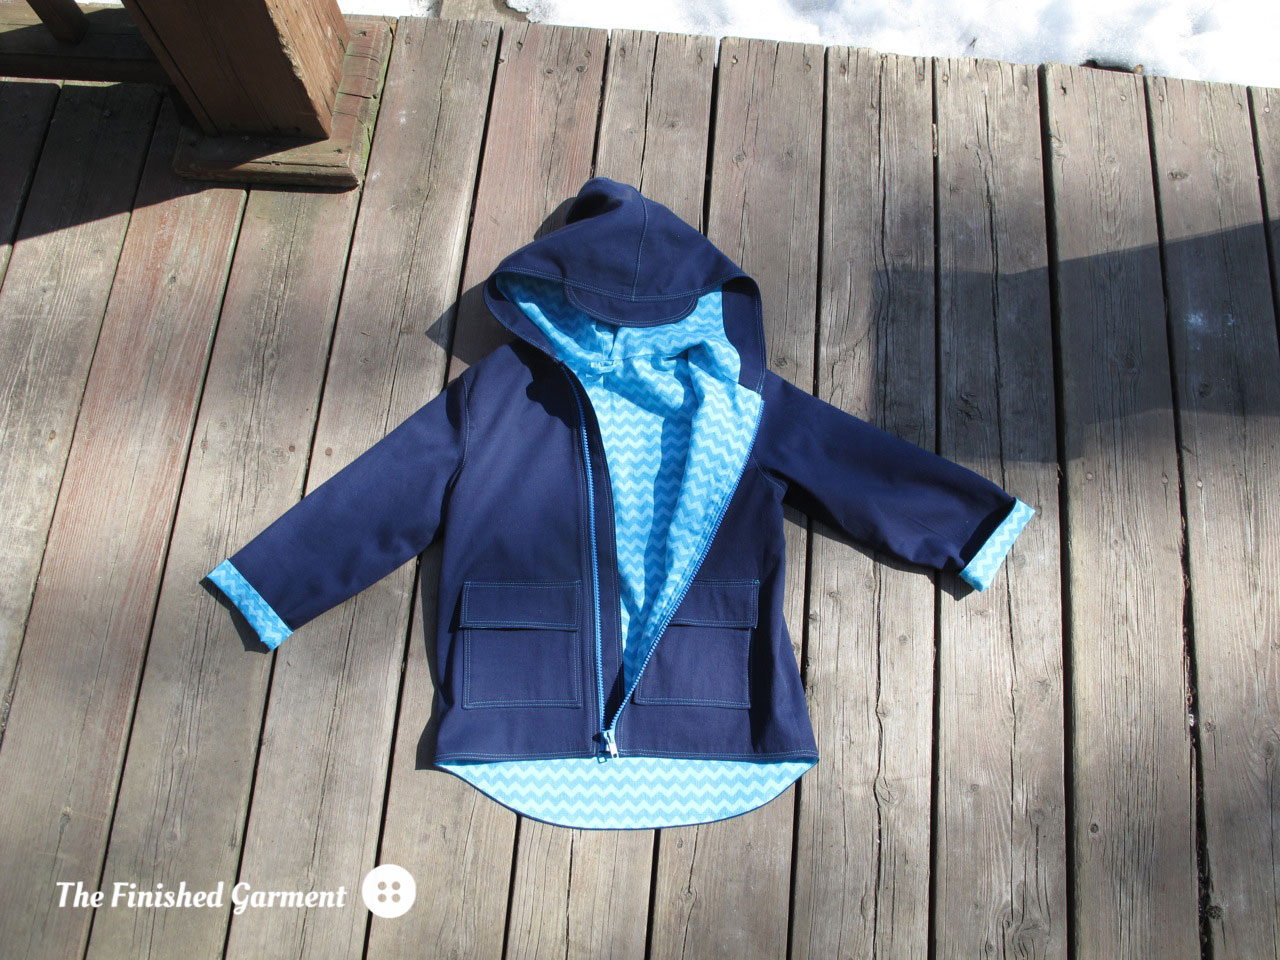 The Spring Showers Jacket sewing pattern by Elegance & Elephants, as sewn by The Finished Garment.